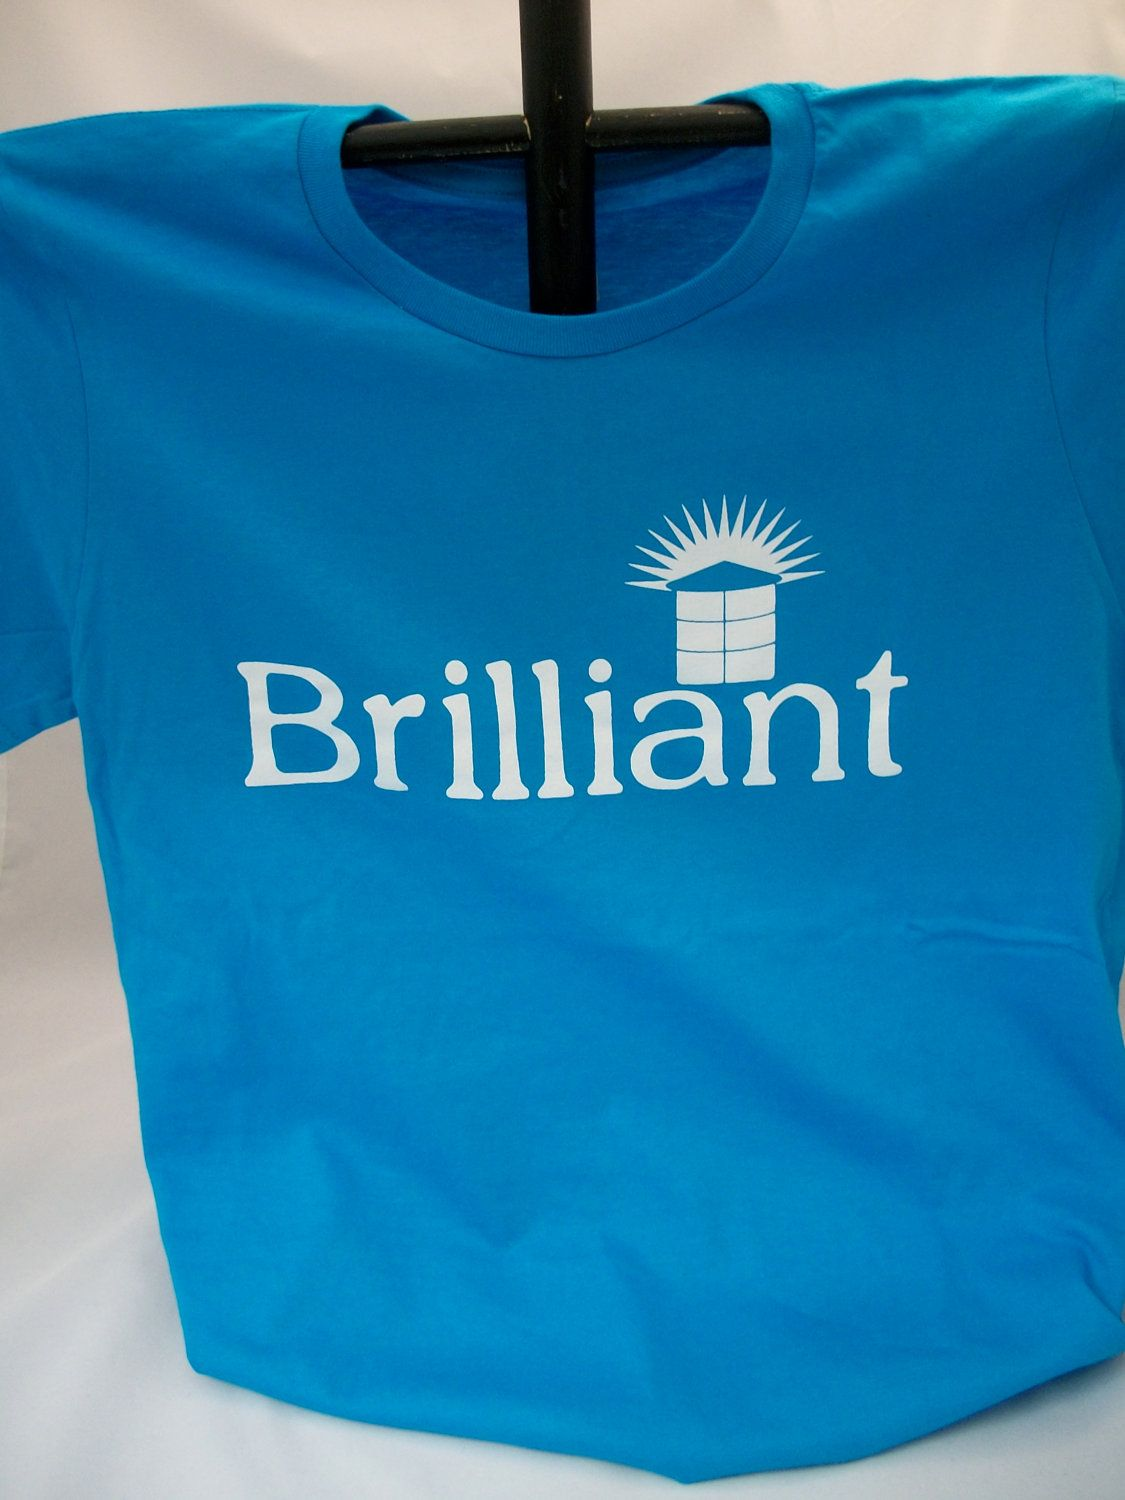 Clearance Brilliant Large Ladies Fitted Tee. $6.00, via Etsy.